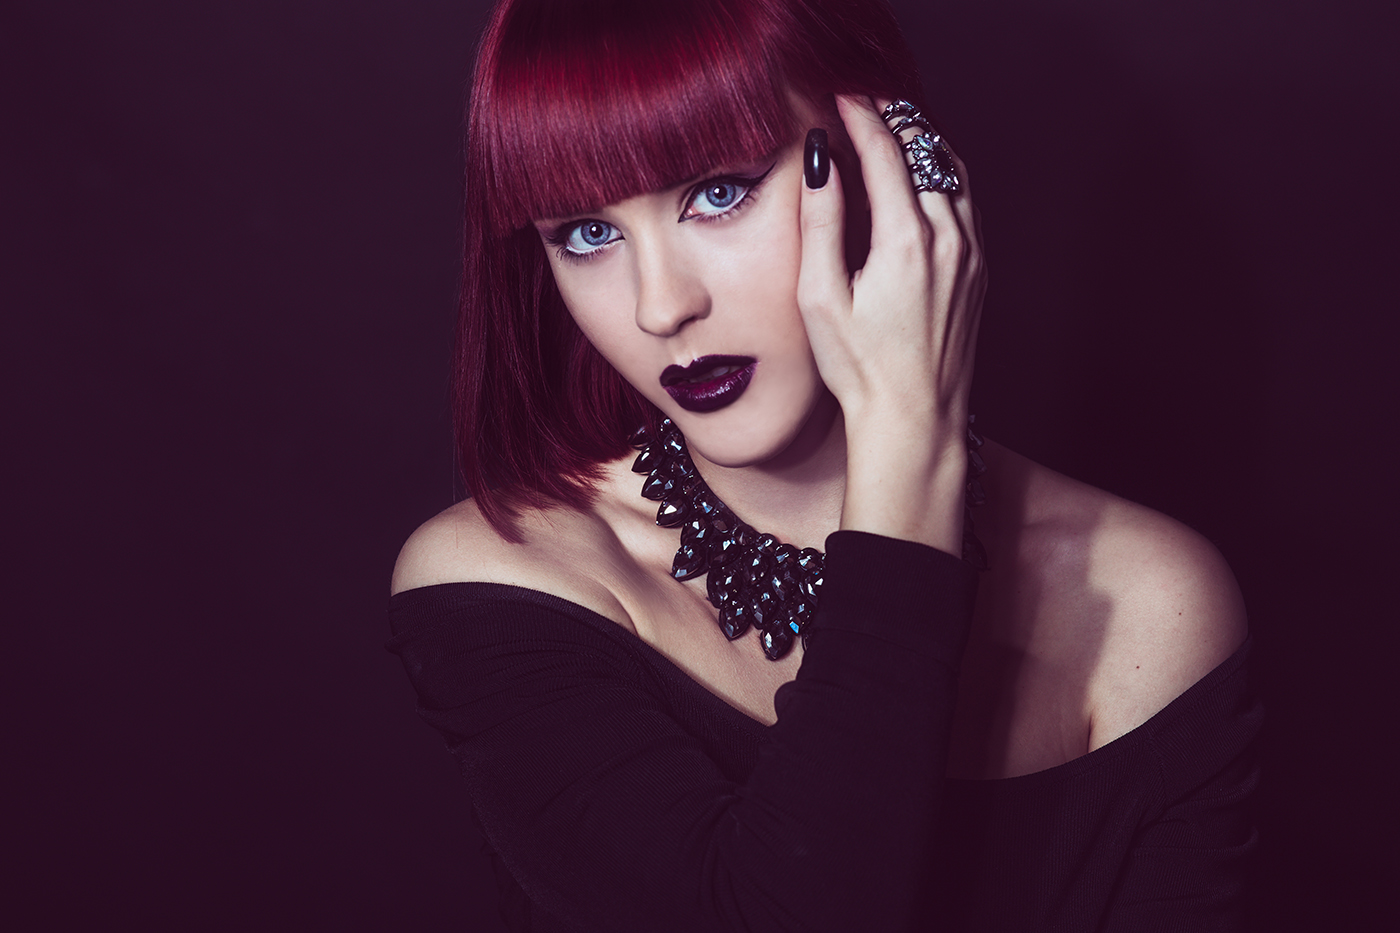 Portrait photography of women with red hair taken Vilija Skubute studio